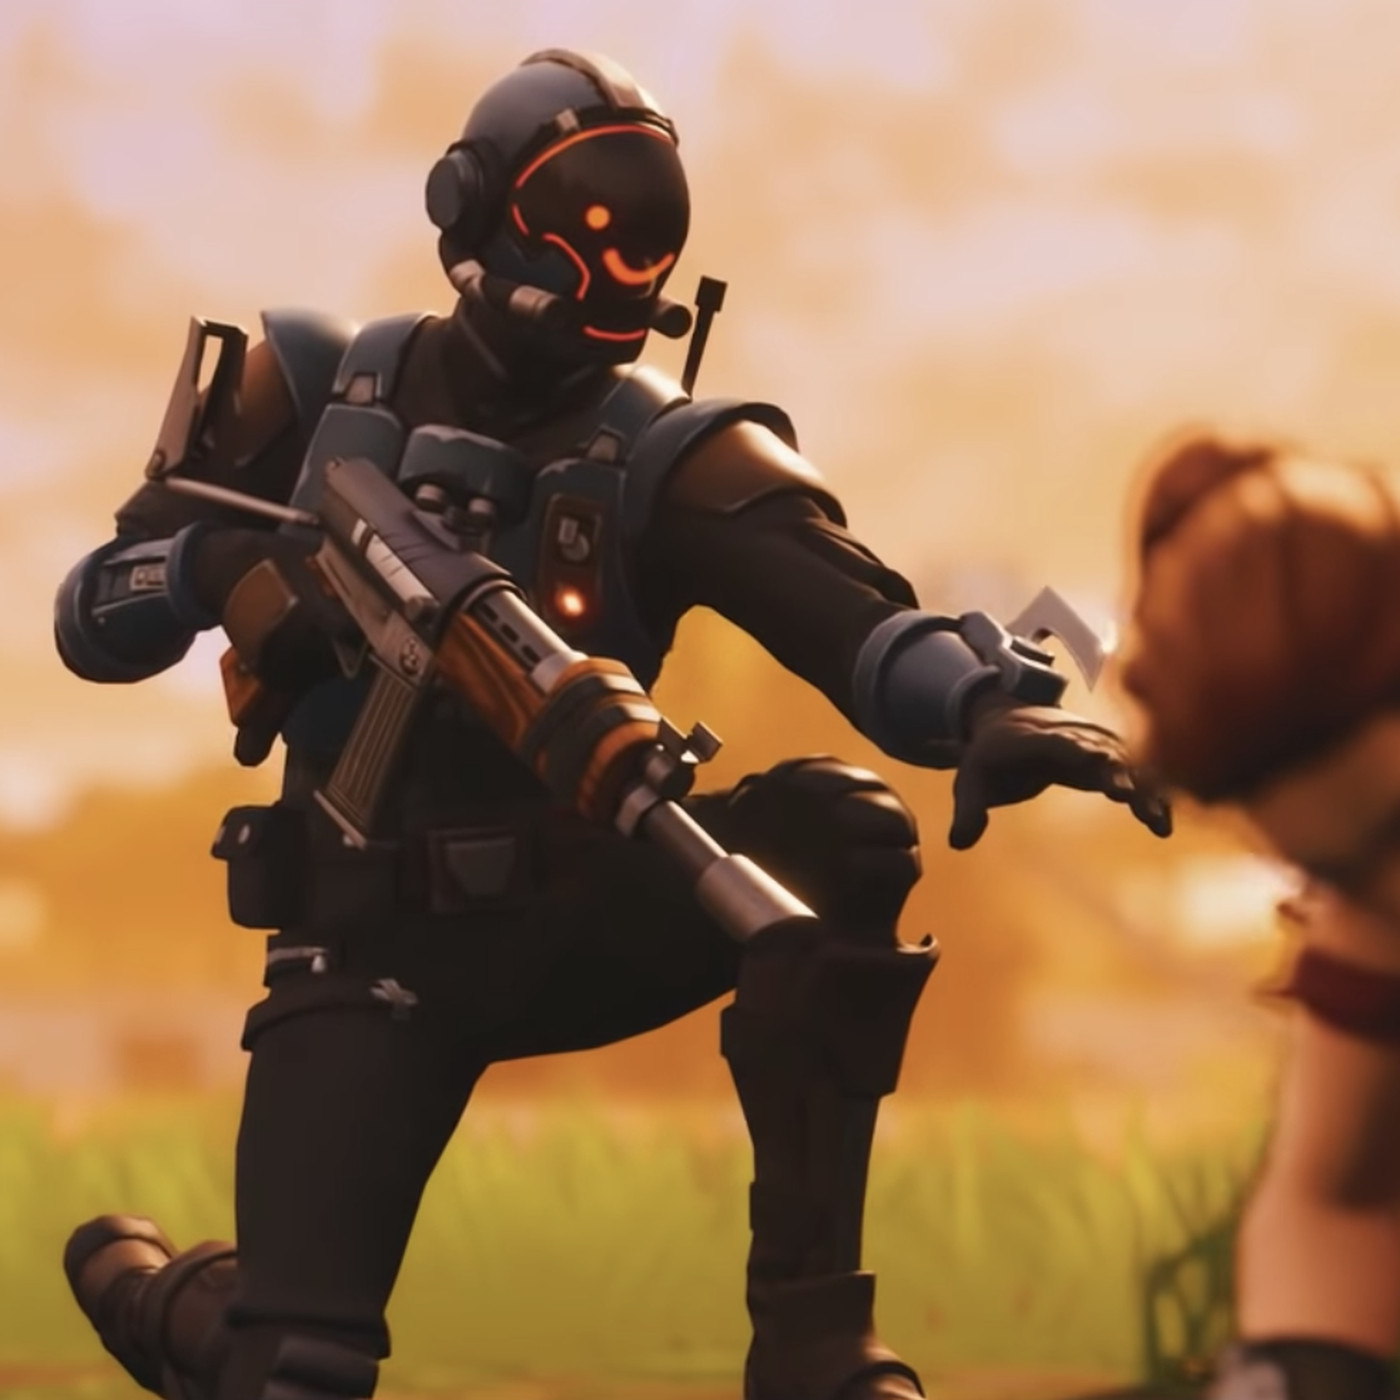 This incredible fan video asks users to join the Fortnite